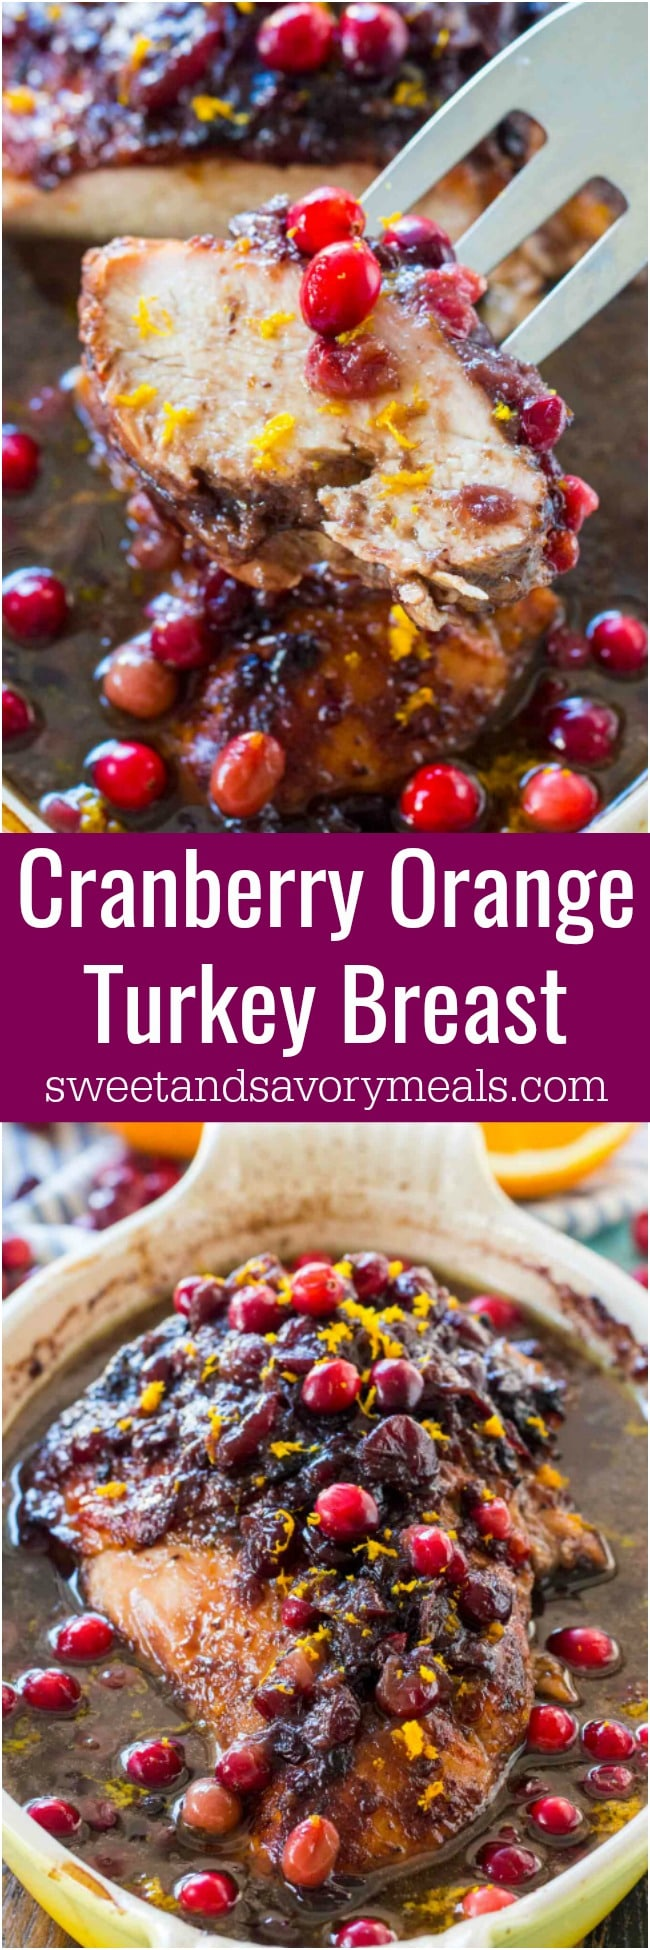 Cranberry Orange Turkey Breast is such a great, easy and delicious alternative to cooking a whole turkey.